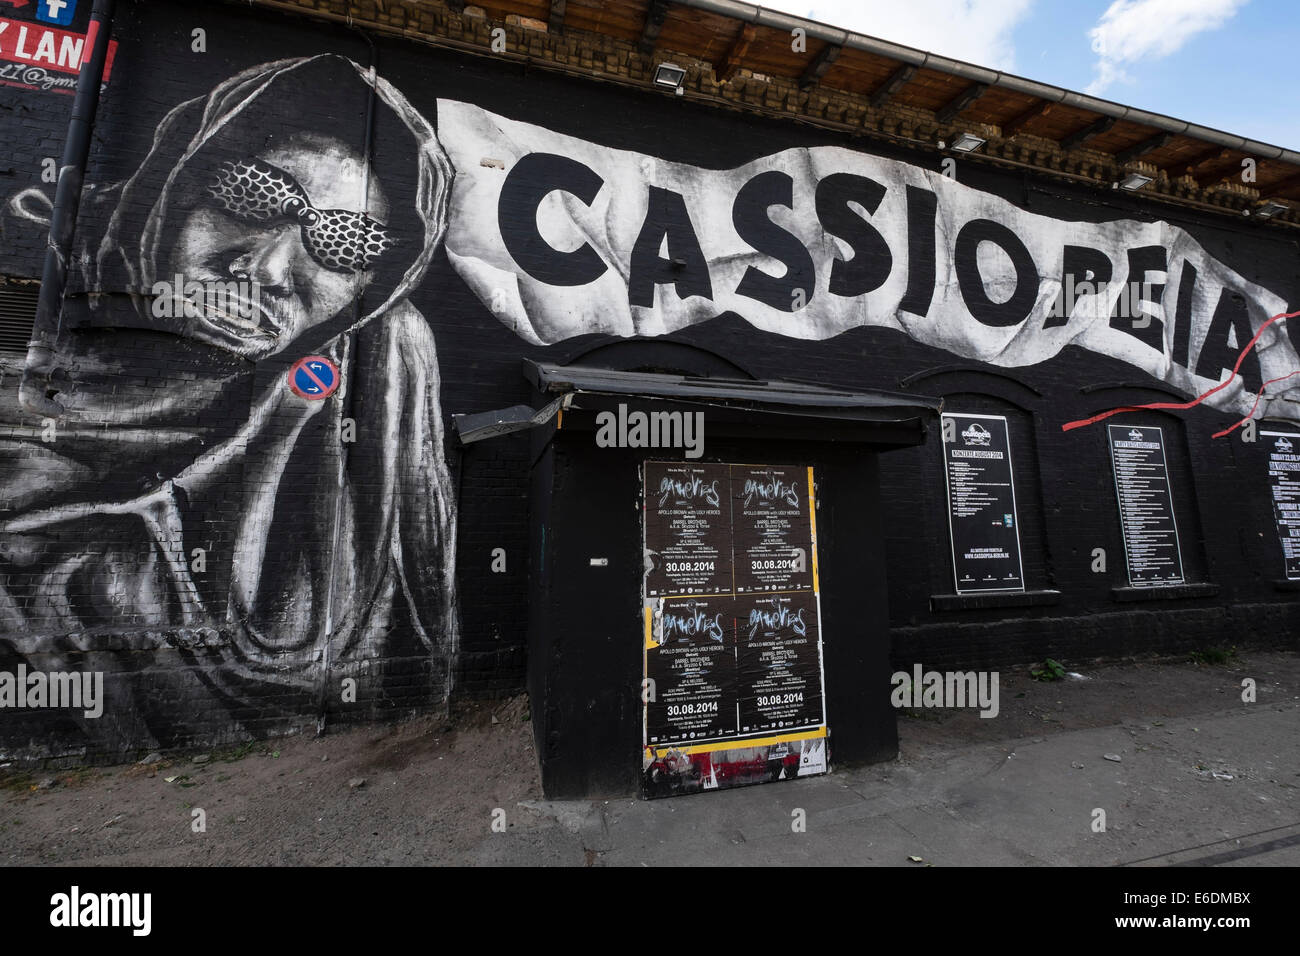 Cassiopeia nightclub in Urban Spree bohemian culture district on 'Clubbing Mile ' on Revaler Street in Friedrichshain - Stock Image